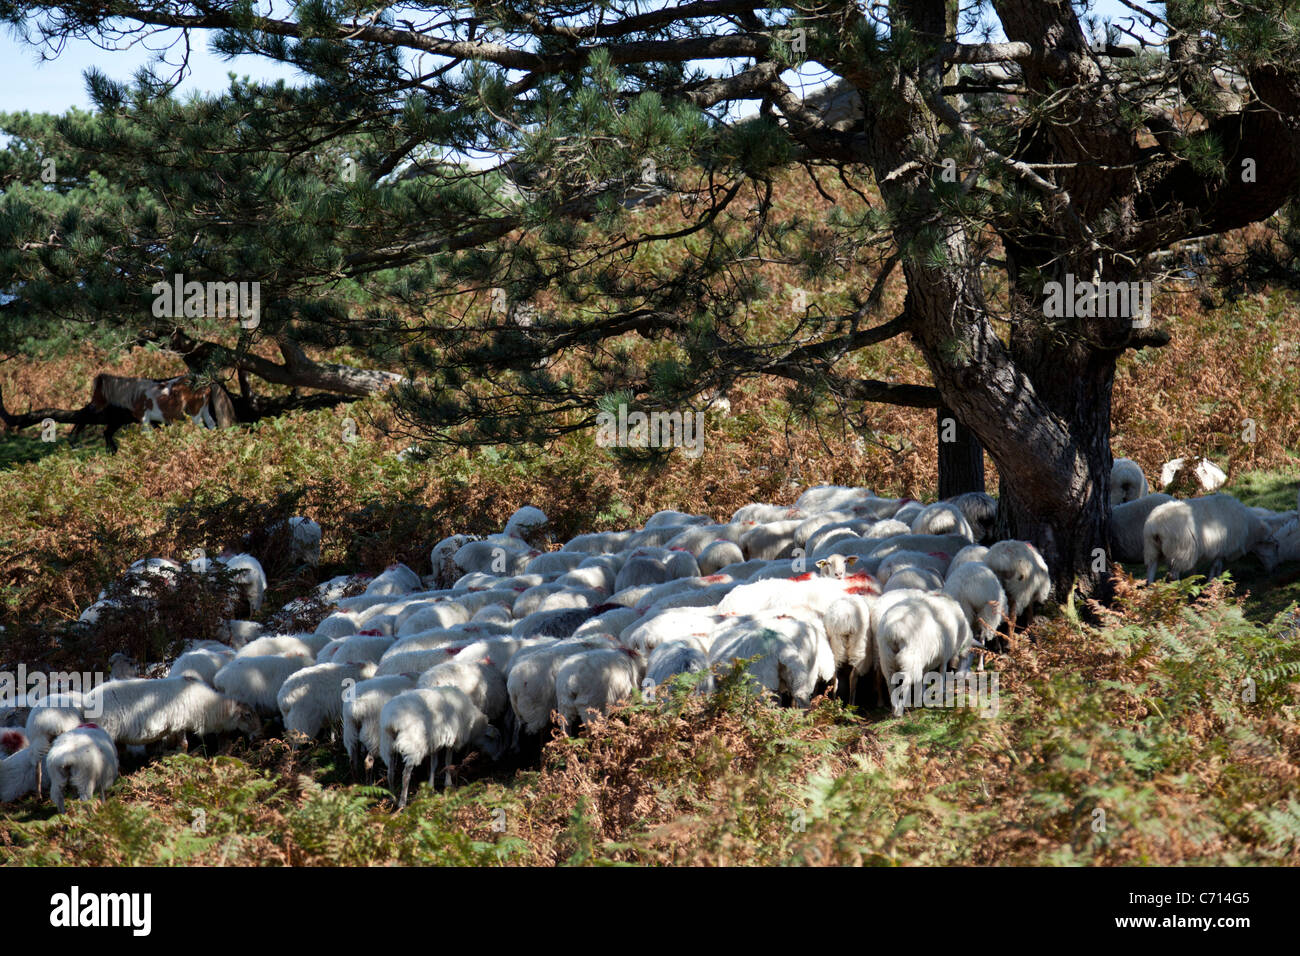 Sheep protecting themselves from the sun under the shade of trees (France). Brebis se protégeant du soleil - Stock Image